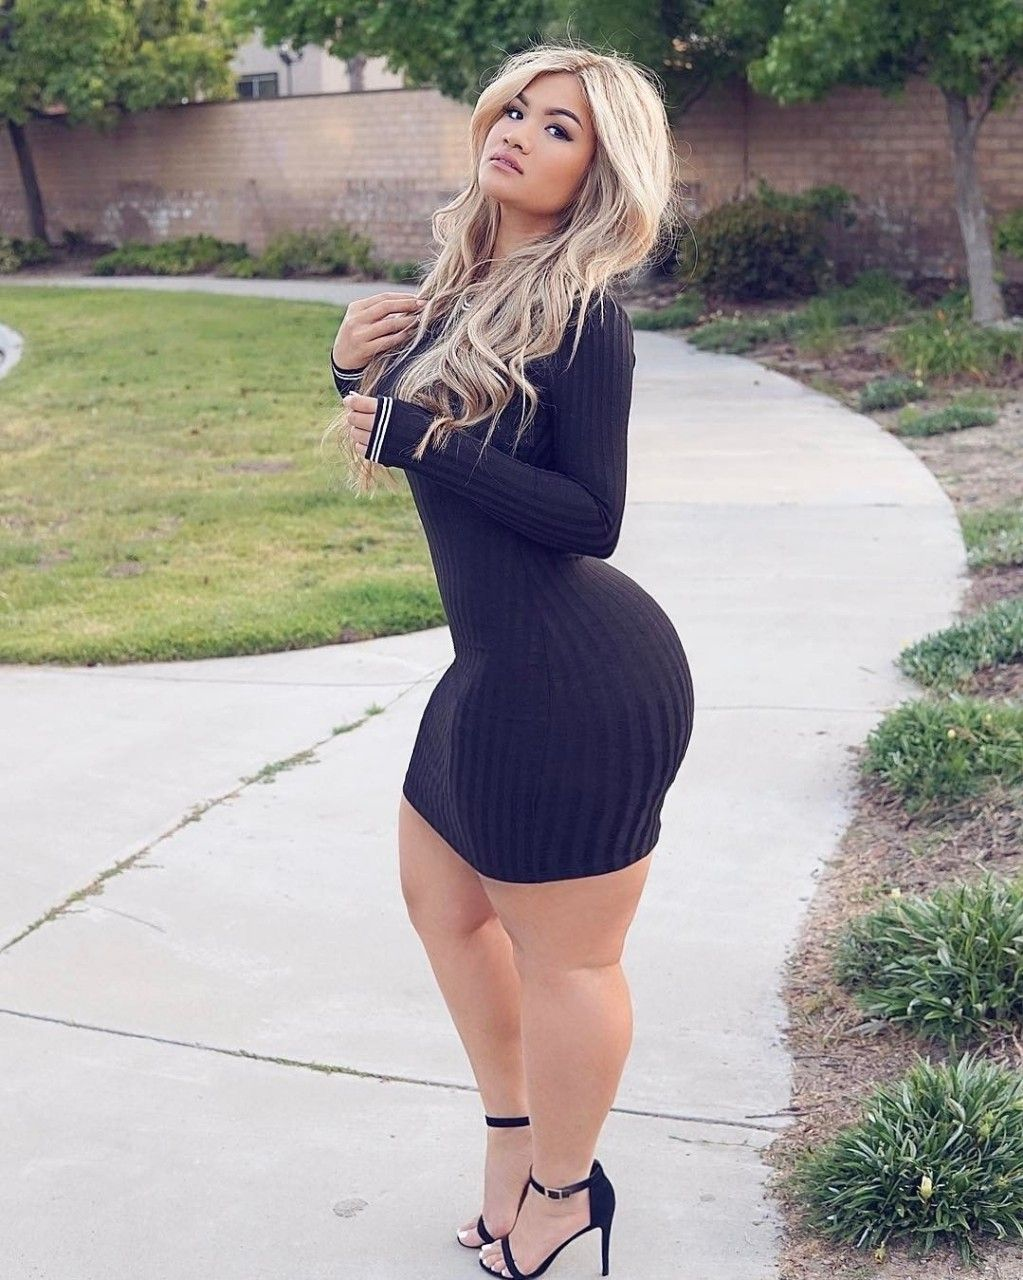 BEAUTIFUL THICK CURVY PAWG BBW #ASS, THICK THIGHS & LEGS